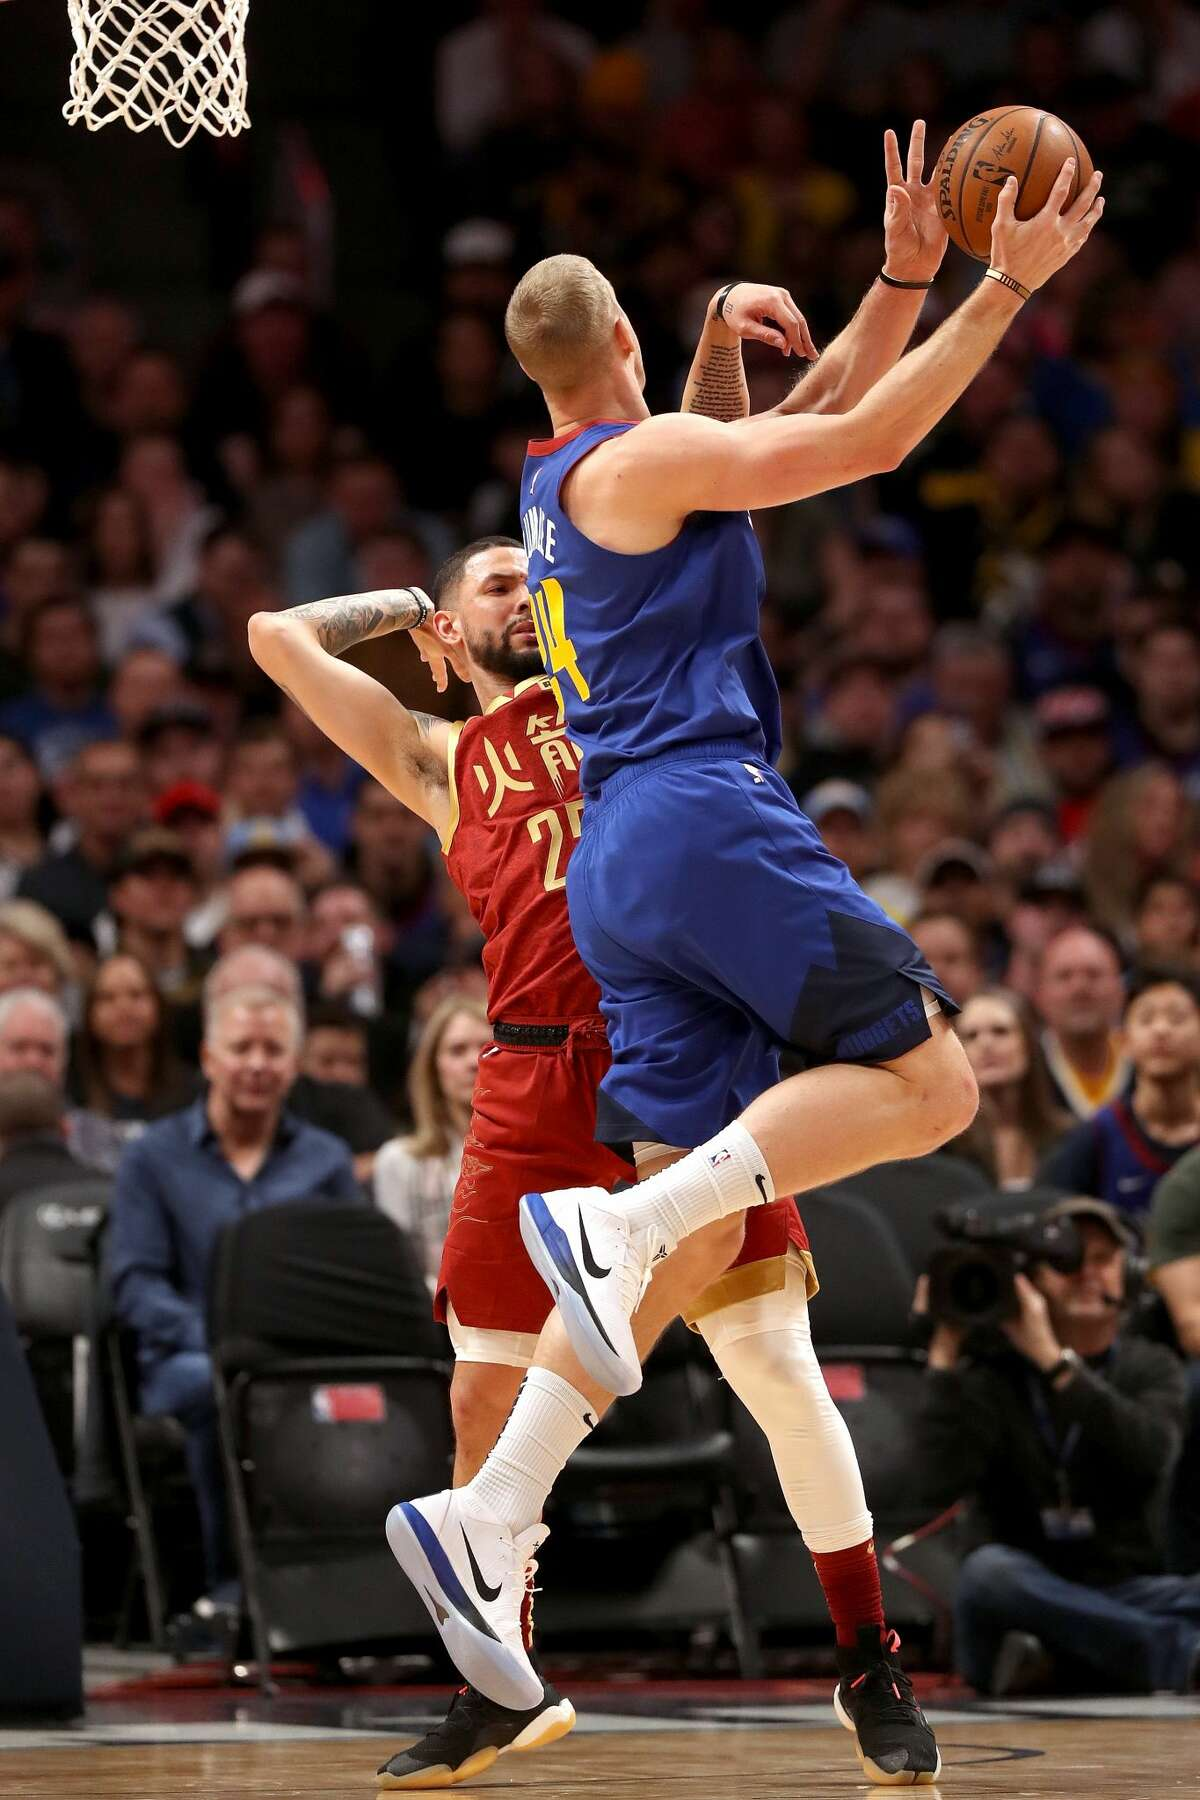 DENVER, COLORADO - FEBRUARY 01: Mason Plumlee #24 of the Denver Nuggets puts up a shot against Austin Rivers #25 of the Houston Rockets in the first quarter at the Pepsi Center on February 01, 2019 in Denver, Colorado. NOTE TO USER: User expressly acknowledges and agrees that, by downloading and or using this photograph, User is consenting to the terms and conditions of the Getty Images License Agreement. (Photo by Matthew Stockman/Getty Images)